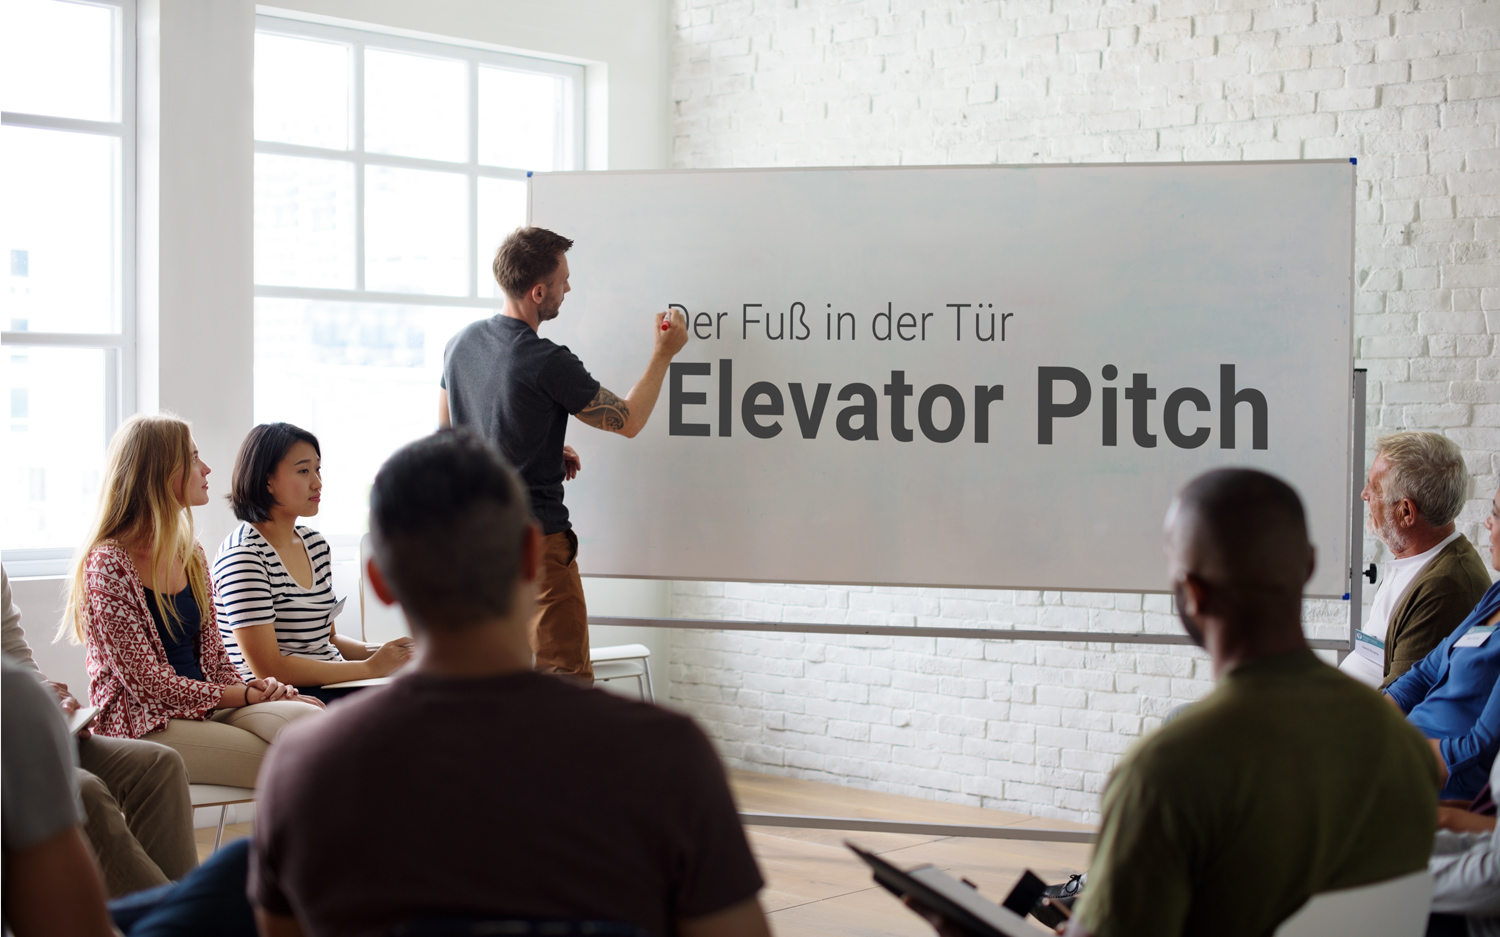 Der Elevator Pitch - der Fuß in der Tür